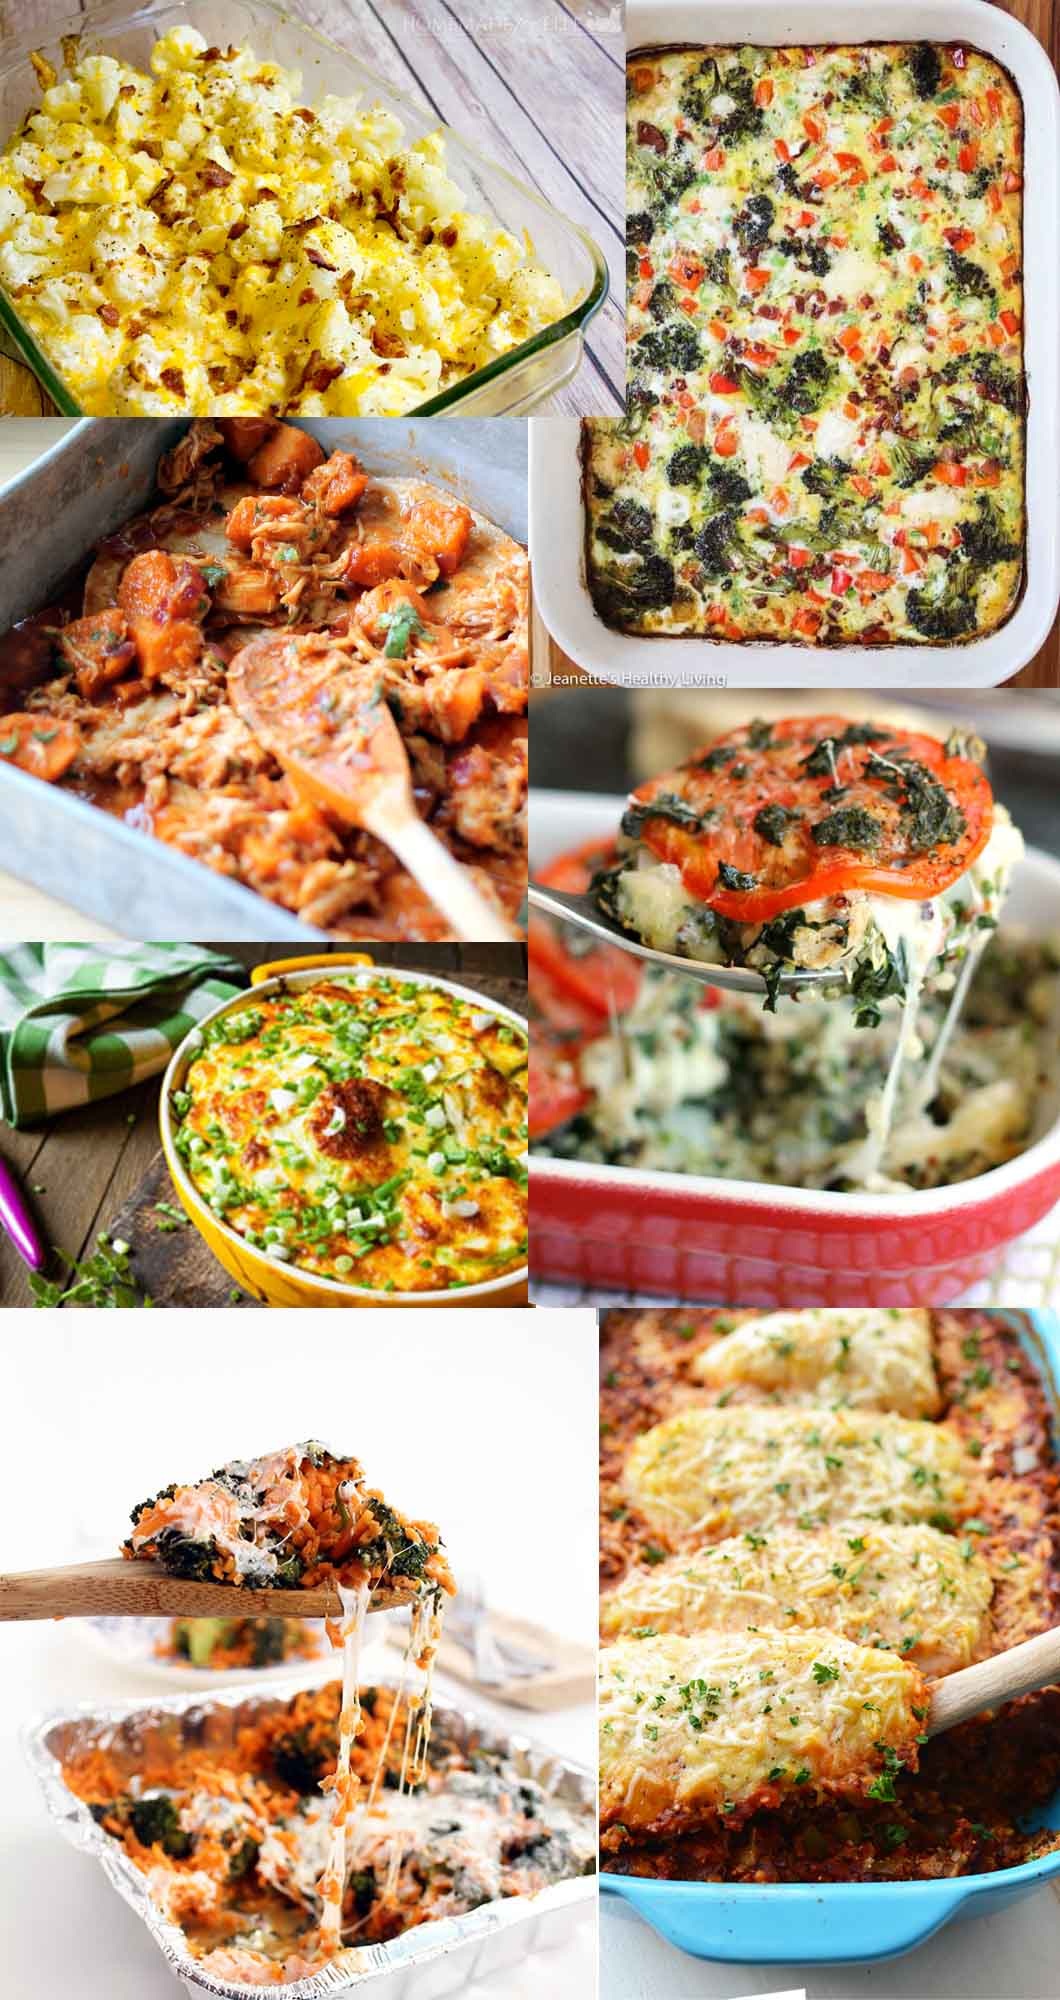 20 Healthy Family Friendly Casseroles